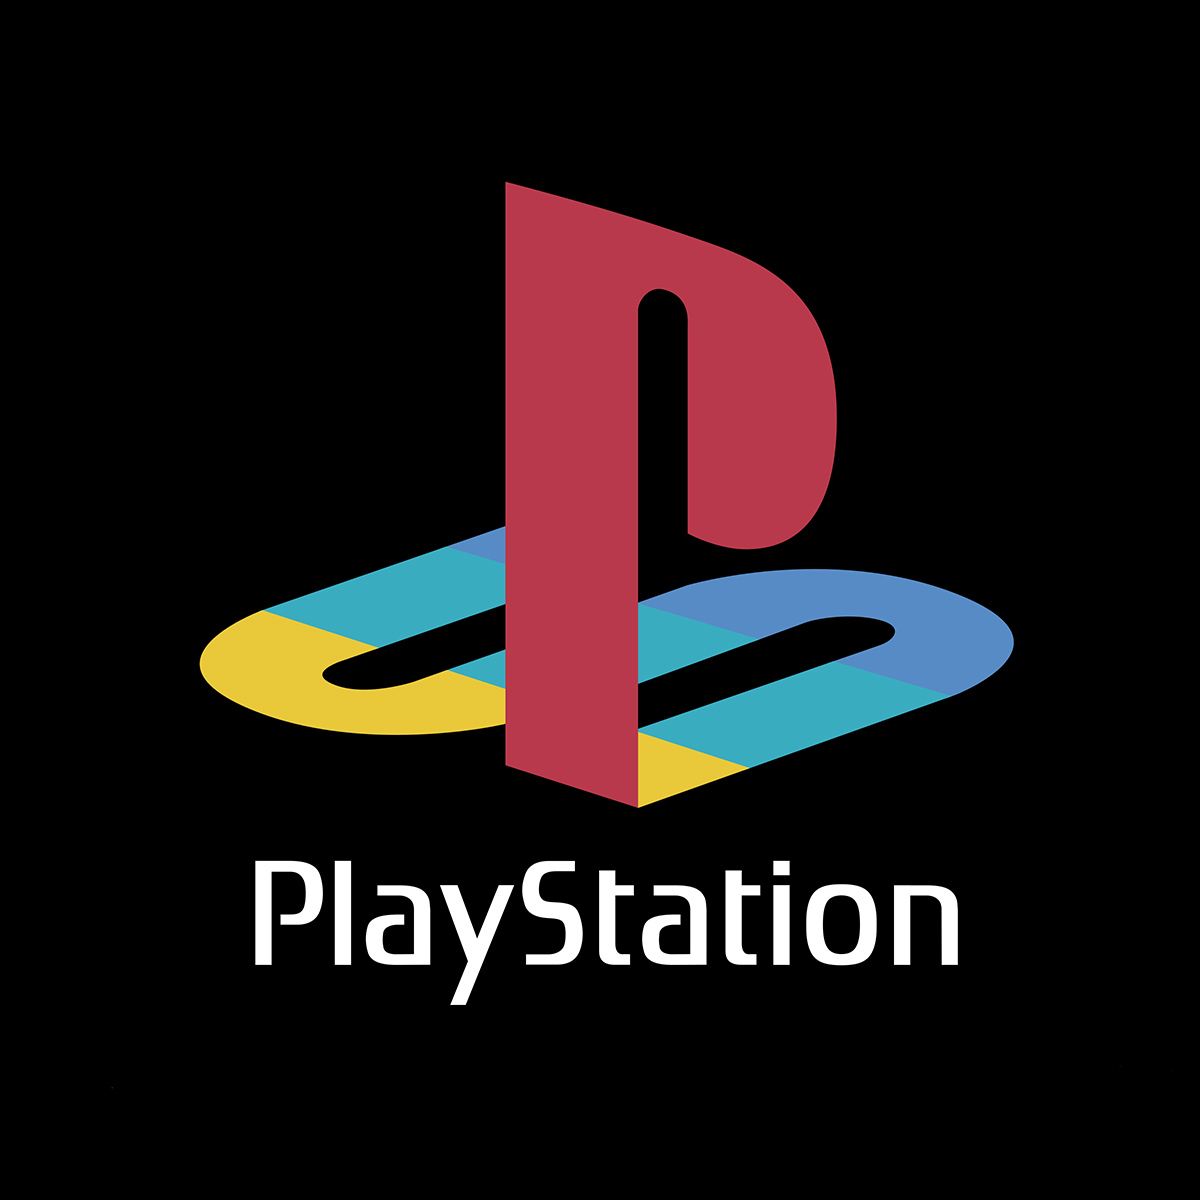 (NOT) E3 2020 Hype Train: Relive the PlayStation E3 Press Conferences of the Past!